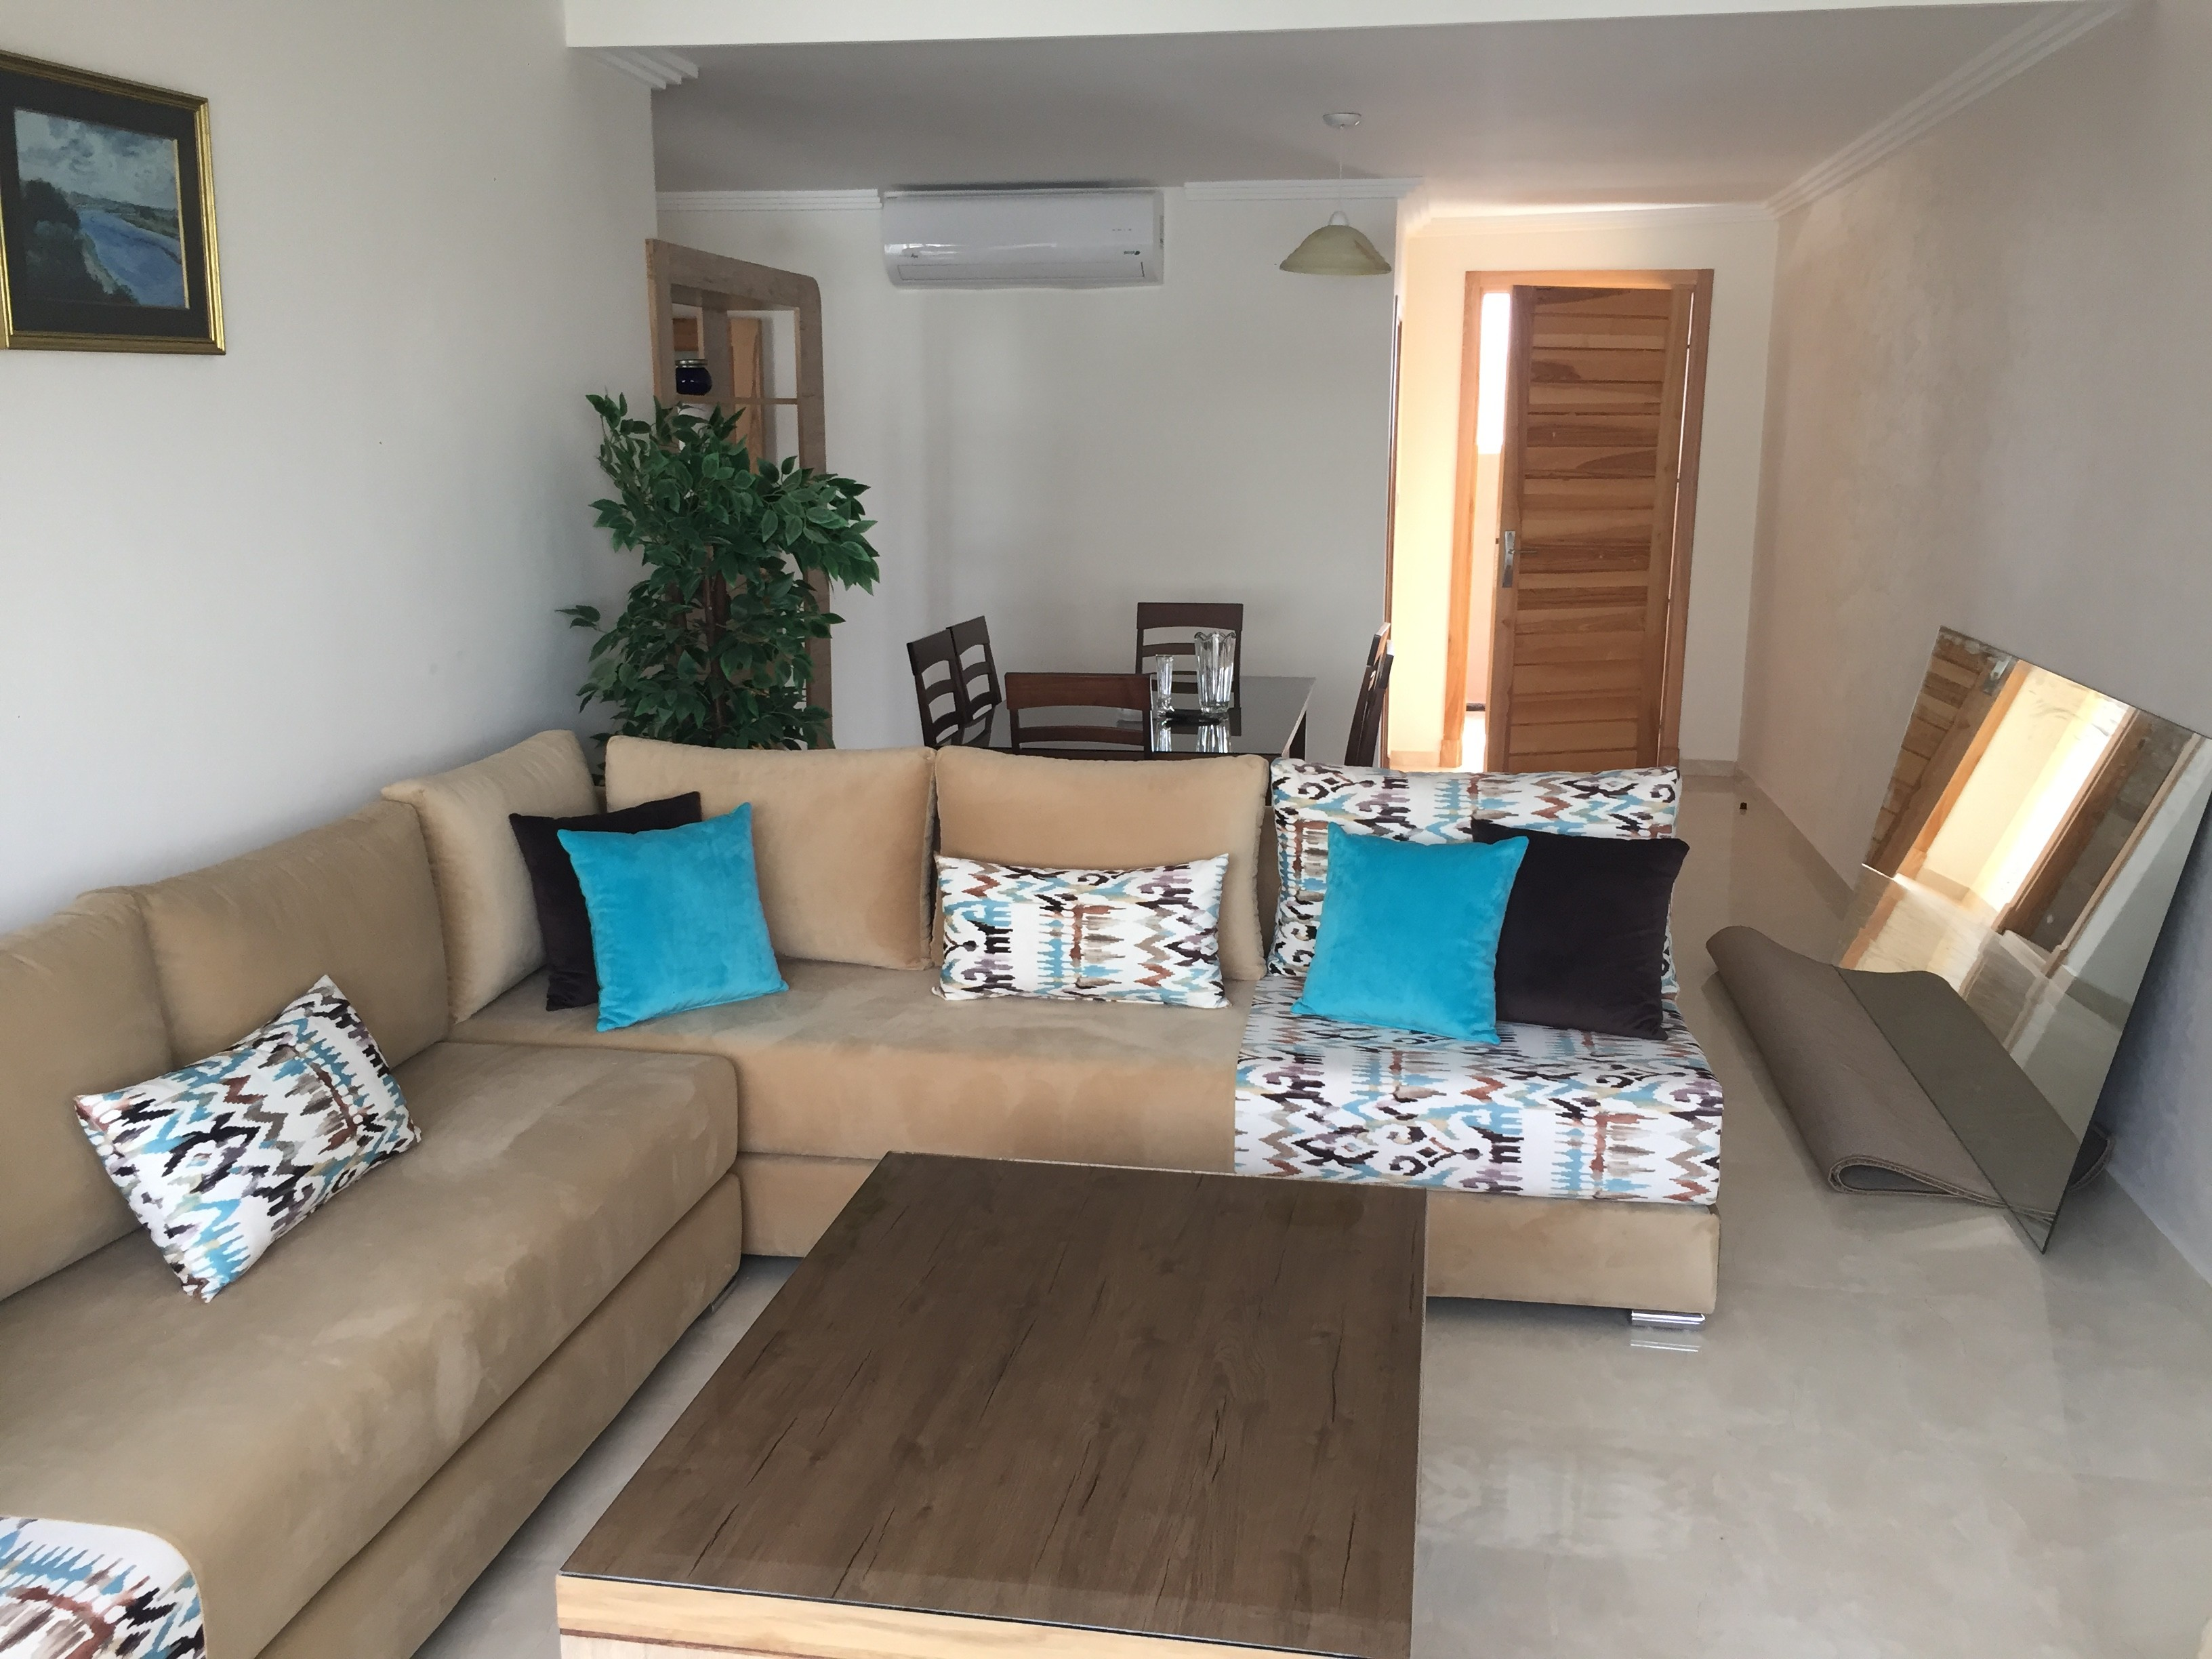 Location <strong>Appartement</strong> Agadir Centre Ville <strong>70 m2</strong>